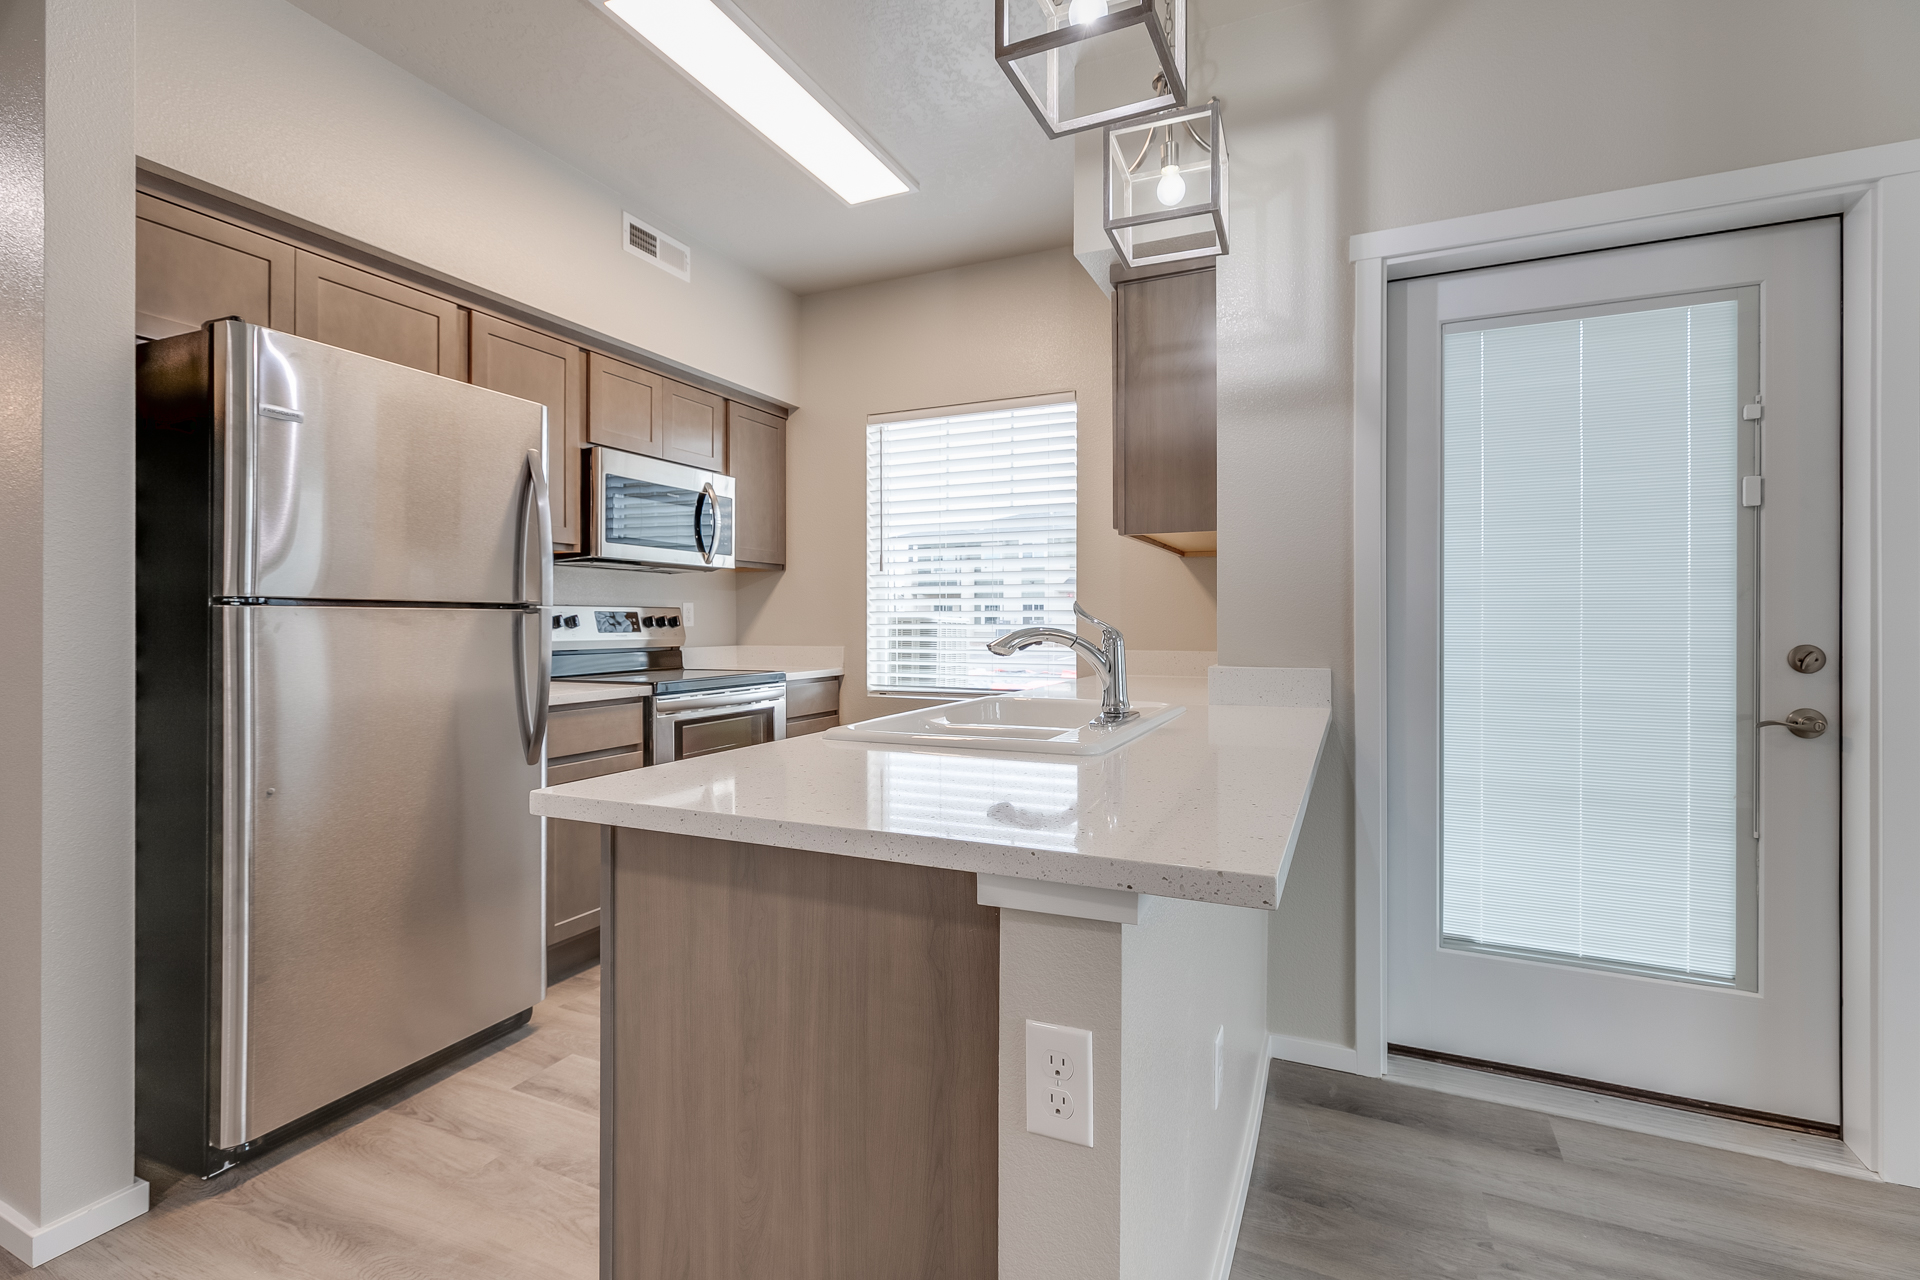 12 Oaks at Ten Mile - CBH Homes - New Homes Boise - Stainless Steel appliances